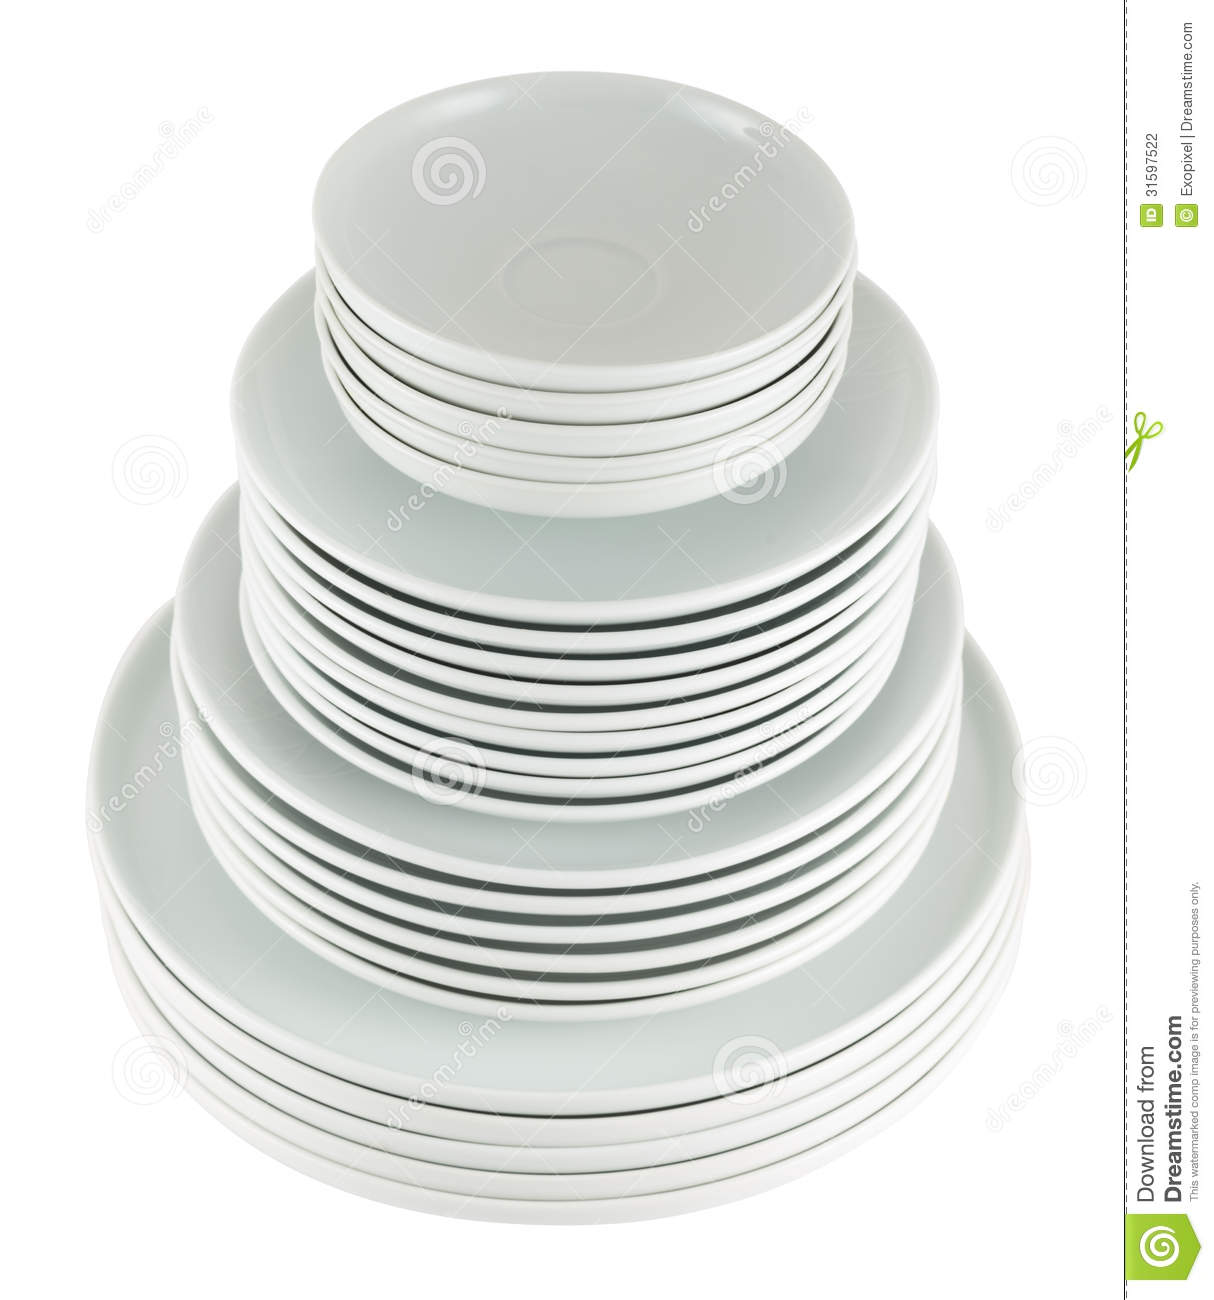 Stack Of Dishes Clipart Pile Of Clean White Dish